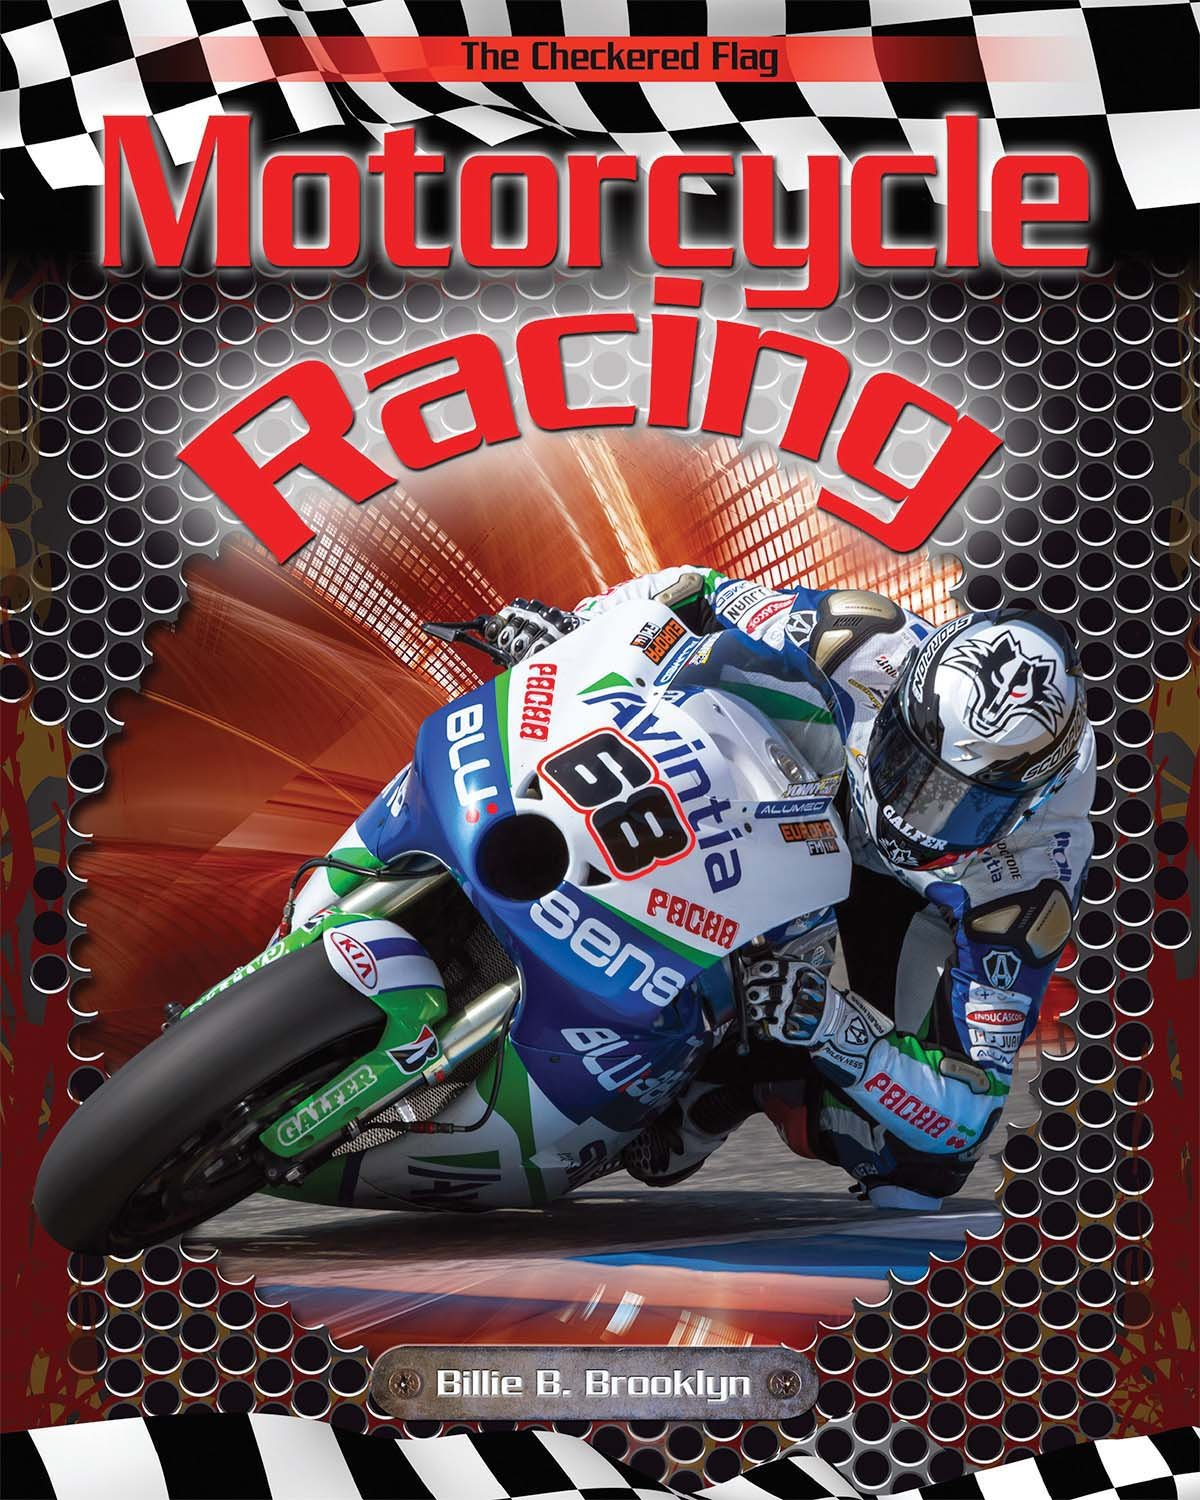 Motorcycle Racing (The Checkered Flag)